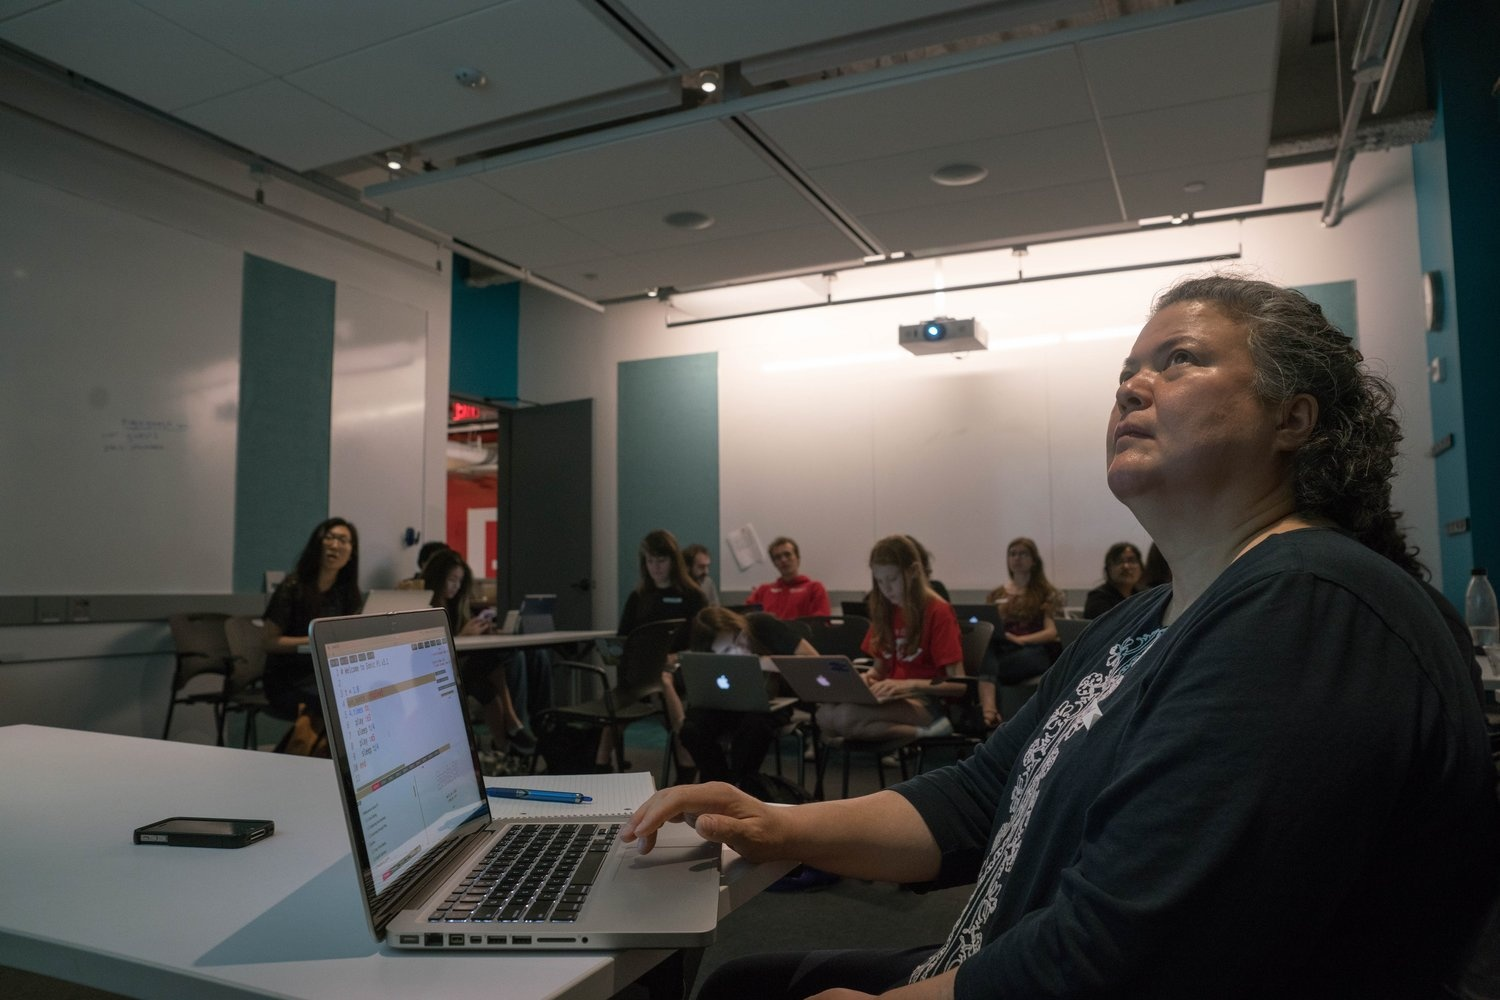 A person with a laptop looking up at the projection screen in a classroom. There a group of people sitting behind her in desks.